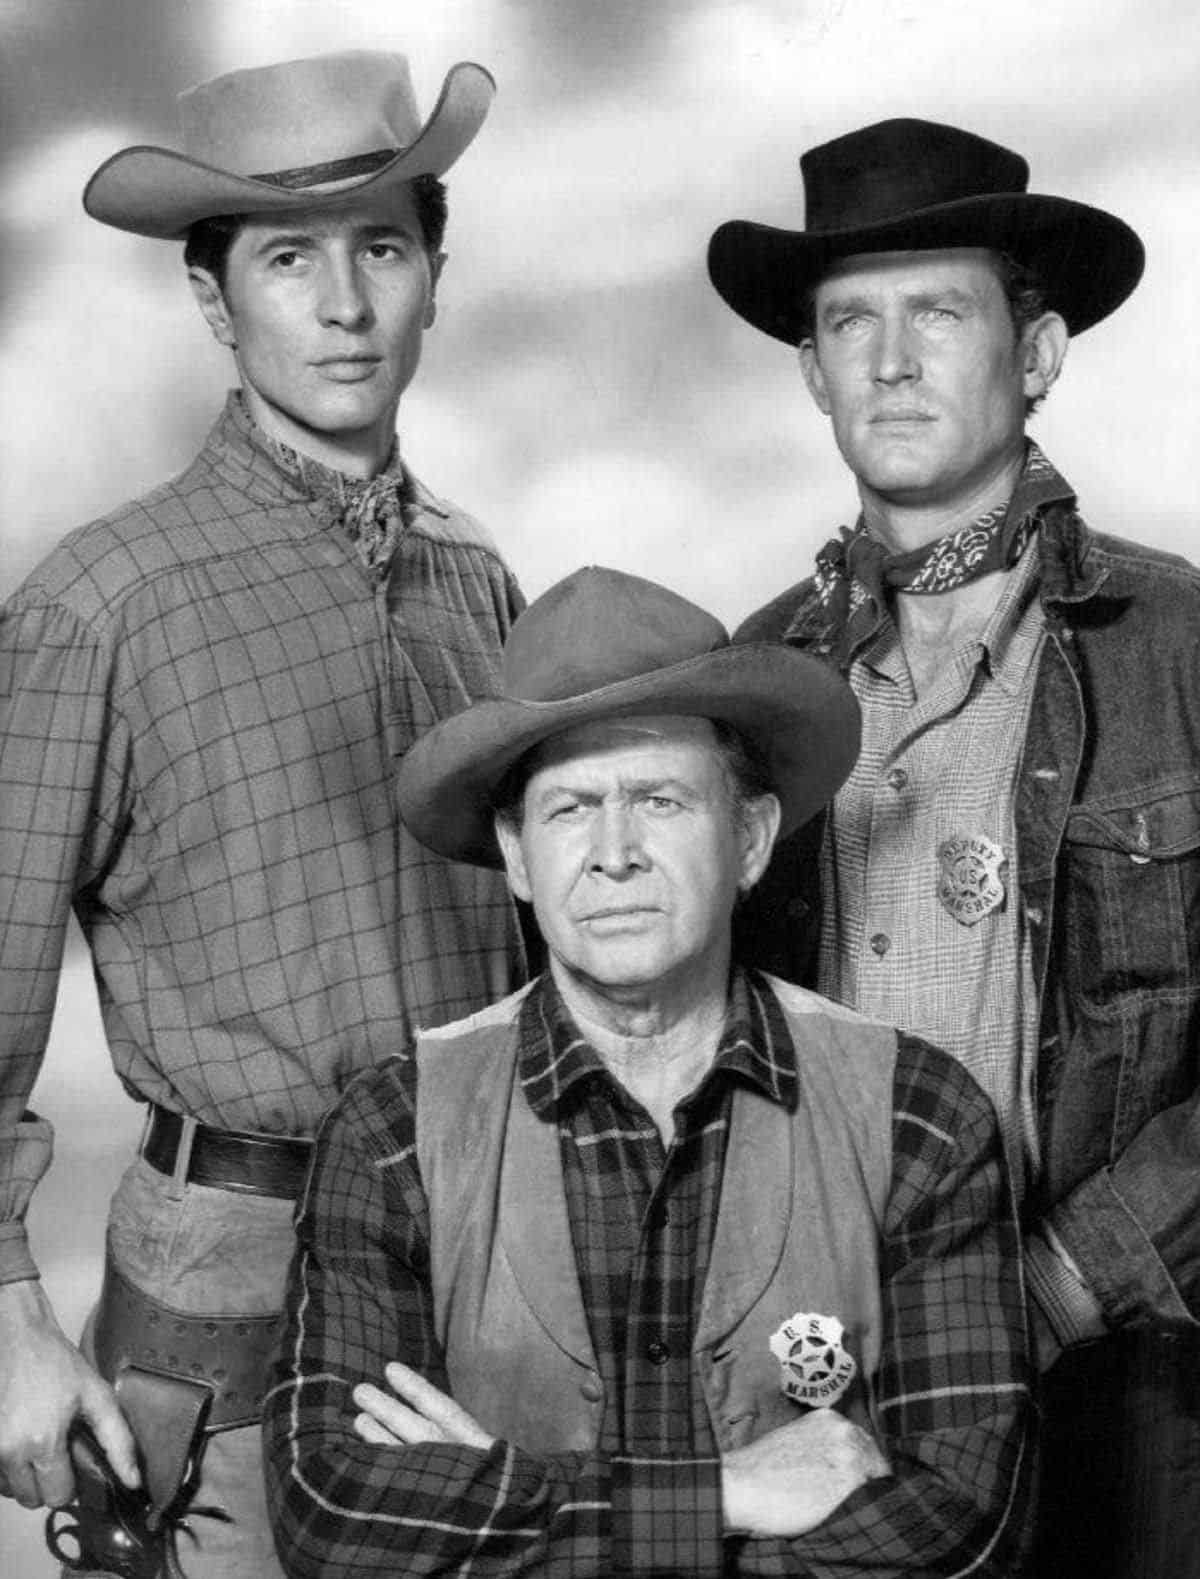 Jock Gaynor, Barton MacLane, and Don Collier in the '60s TV show Outlaws | NBC publicity photo